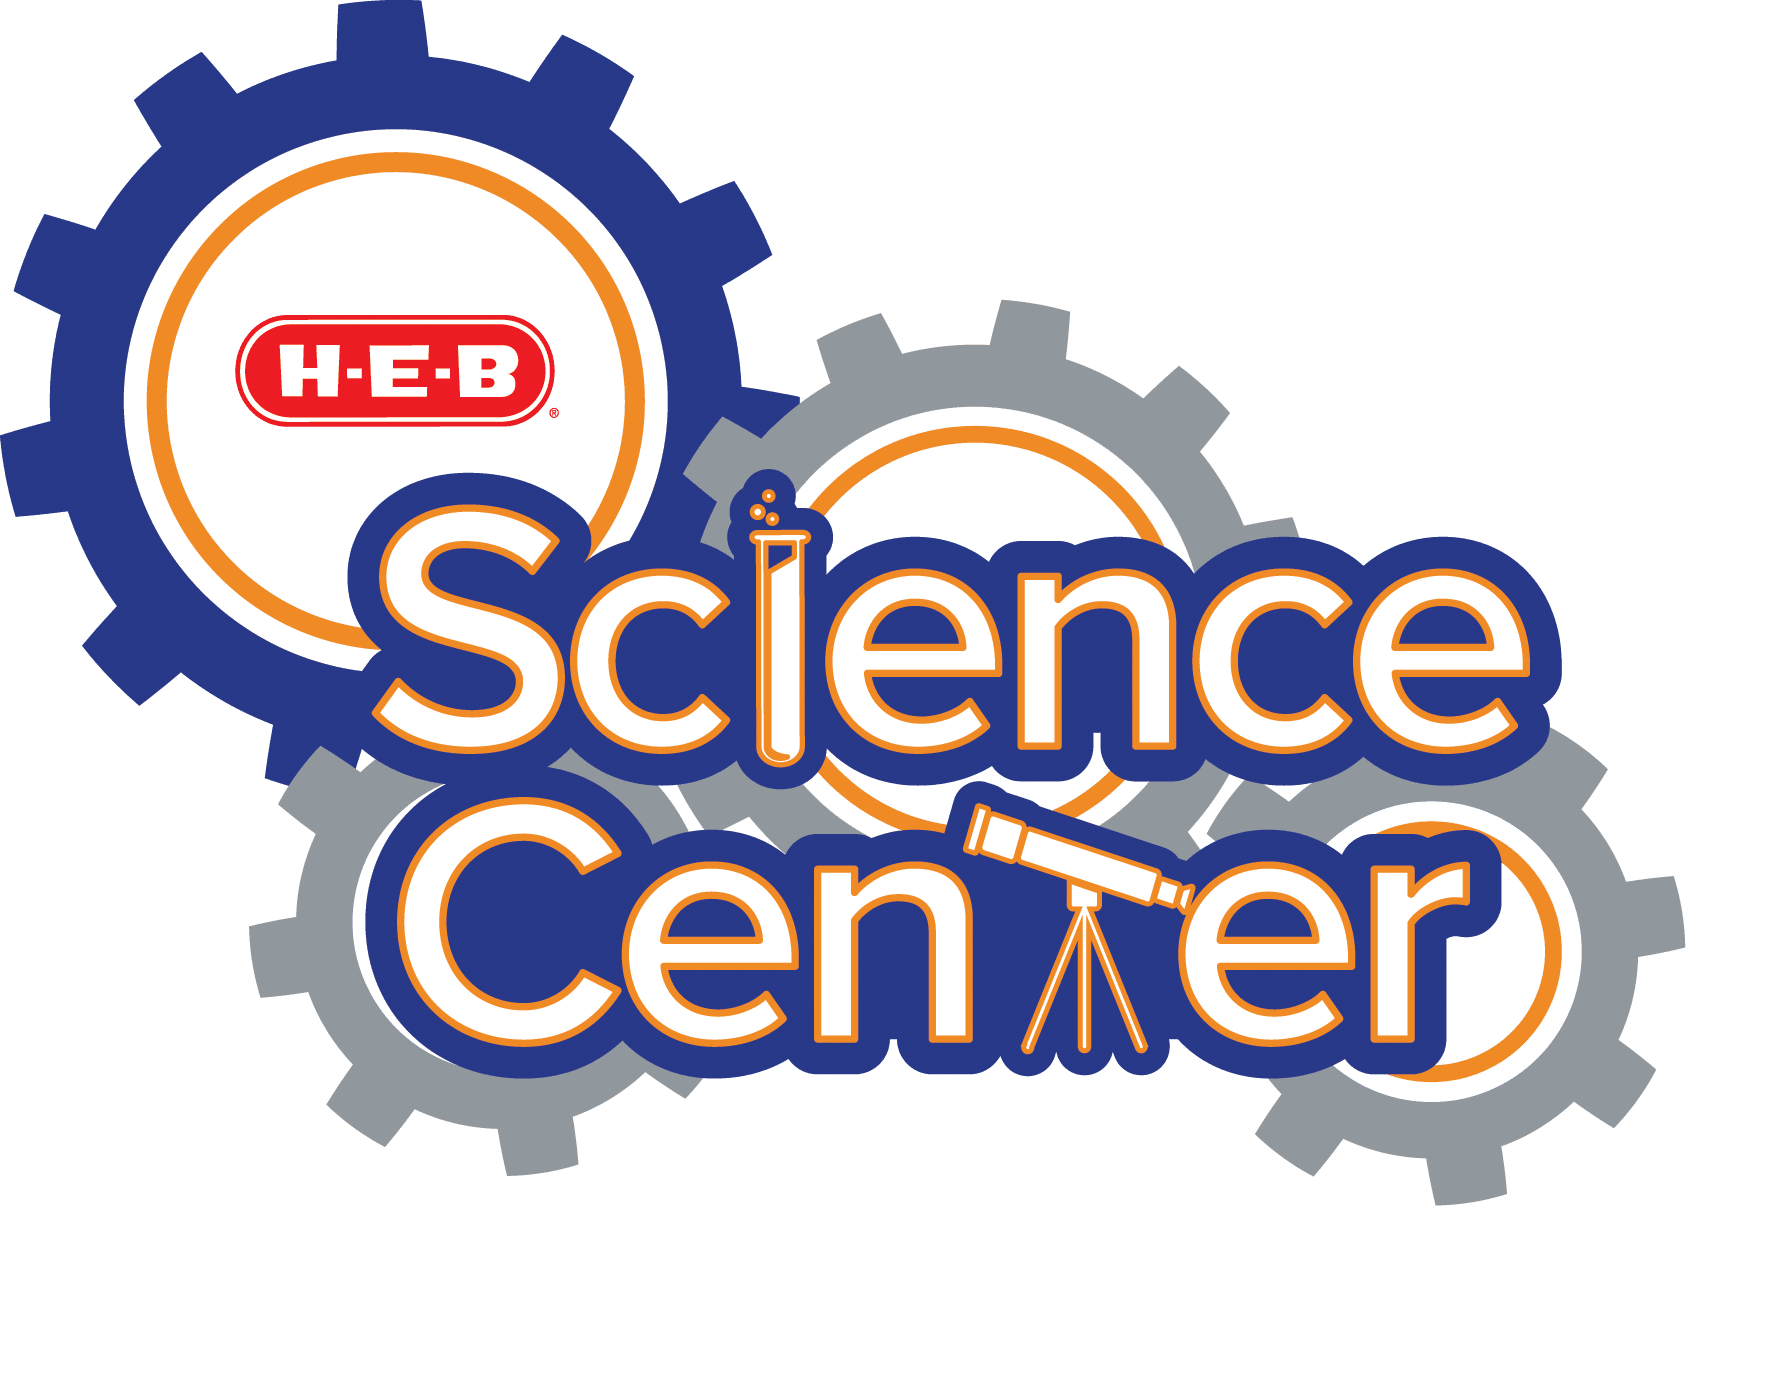 HEB Science Center logo - centered (1)